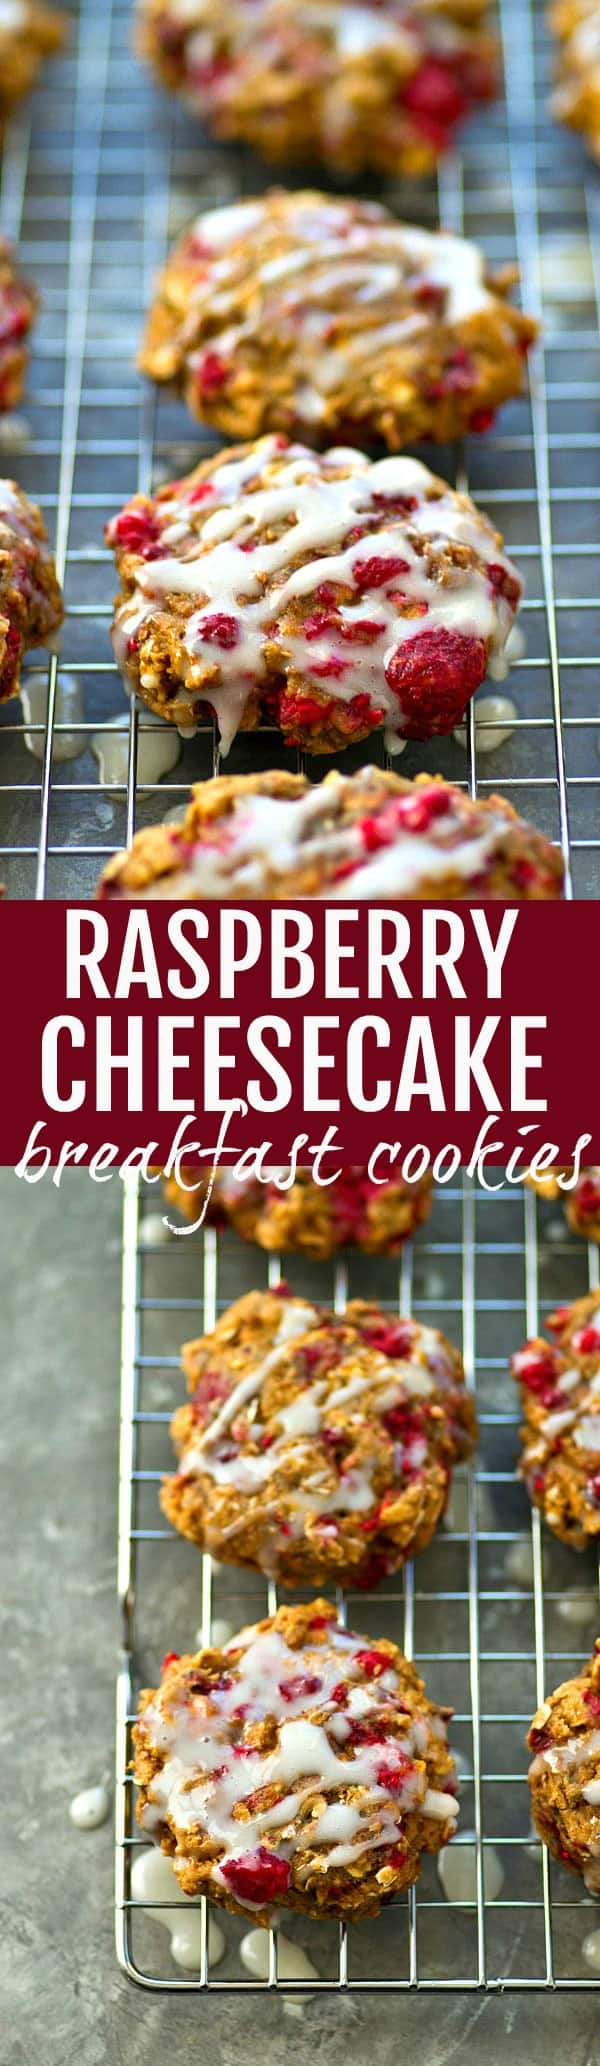 Raspberry cheesecake meets breakfast cookie! These soft and chewy breakfast cookies are jammed full of juicy raspberries and covered in a tangy cream cheese glaze.